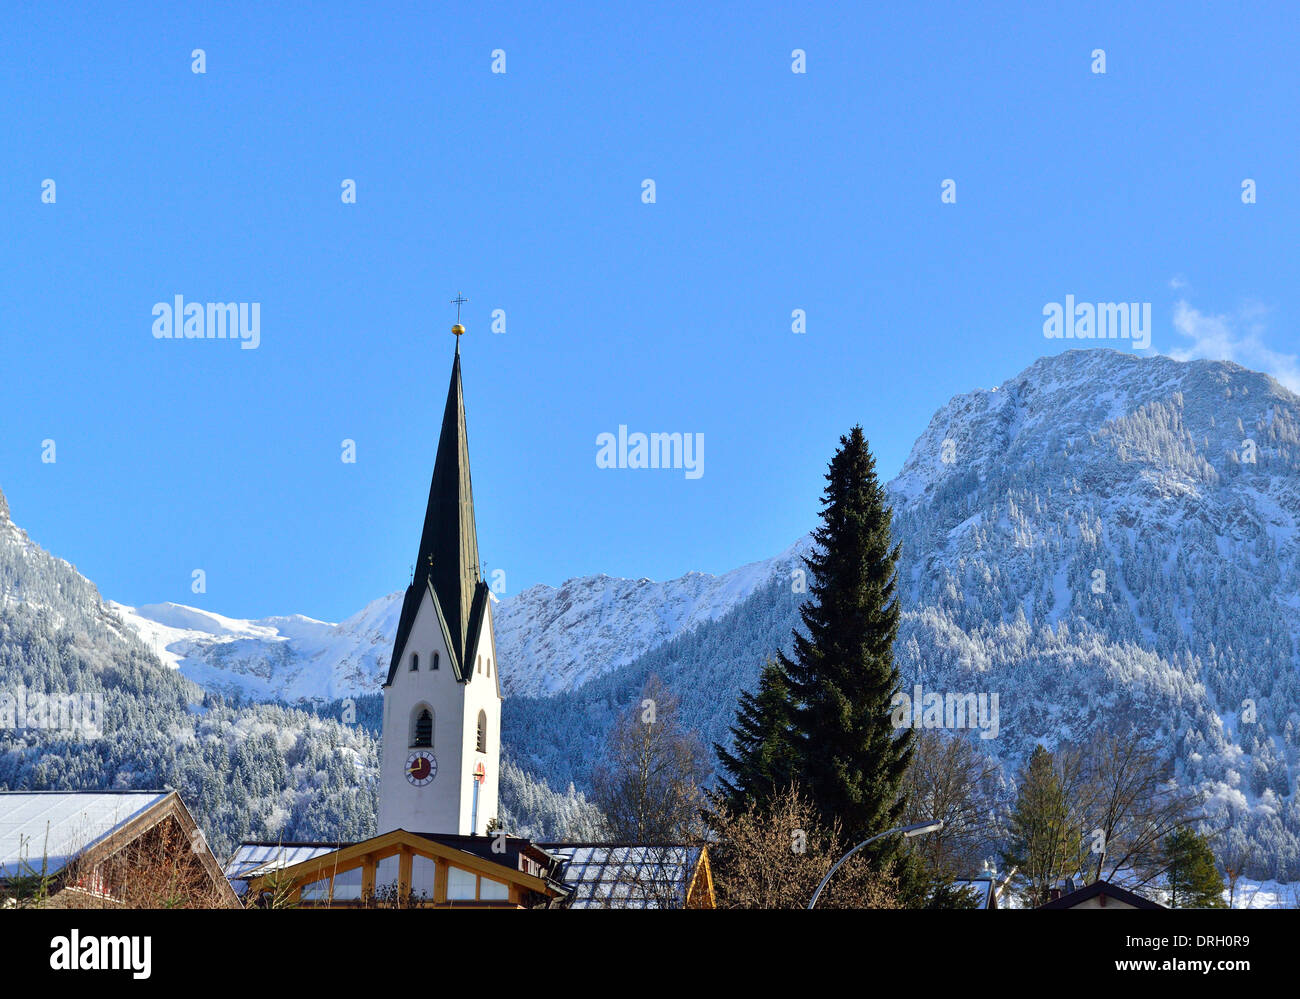 Oberstdorf in winter with a snow fall looking towards  St. Johann Baptist church and  the Bavarian  Alps foothills behind - Stock Image